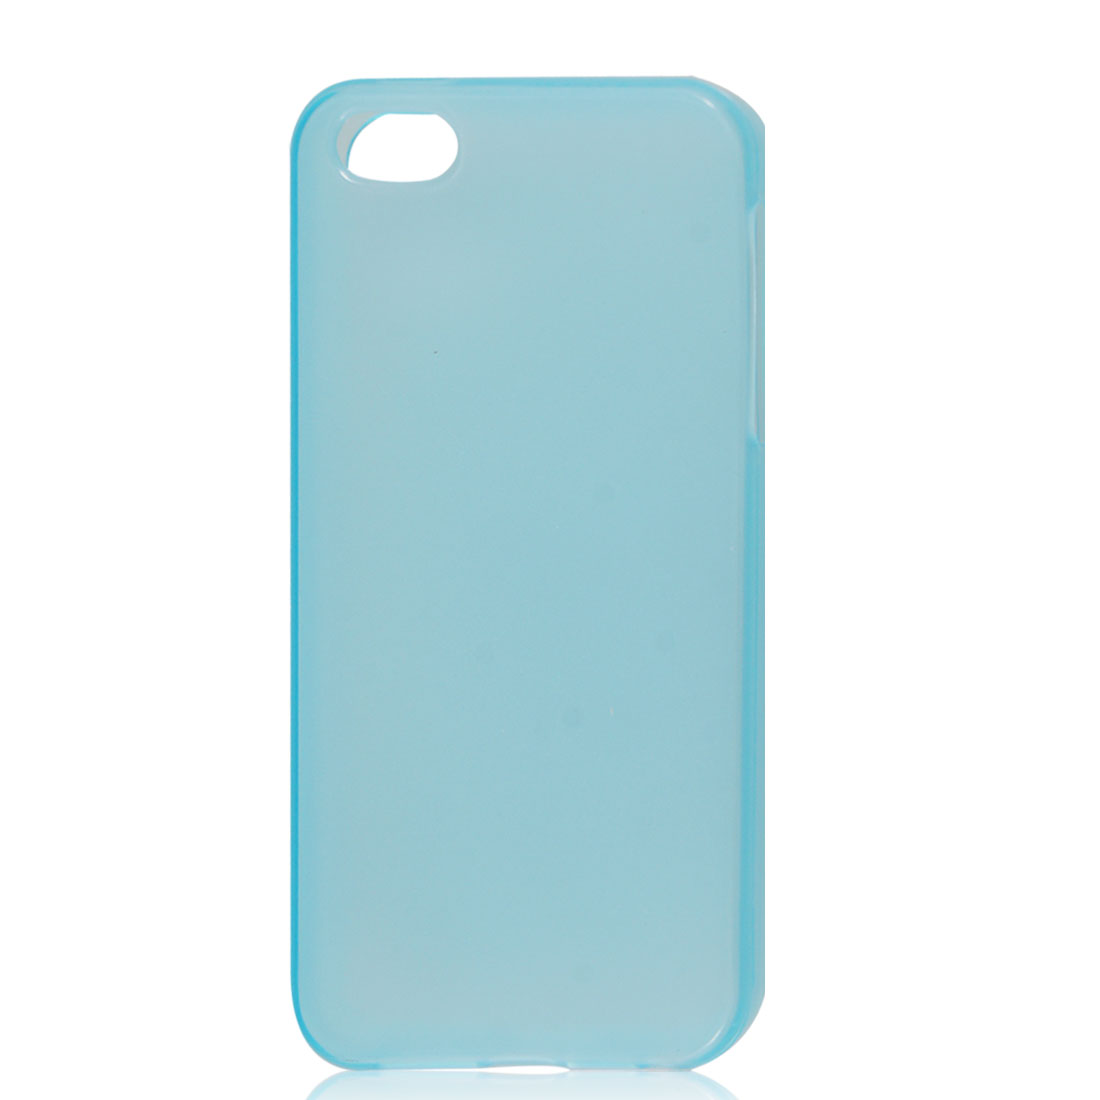 Clear Blue Soft Plastic TPU Protective Case Cover for iPhone 5 5G